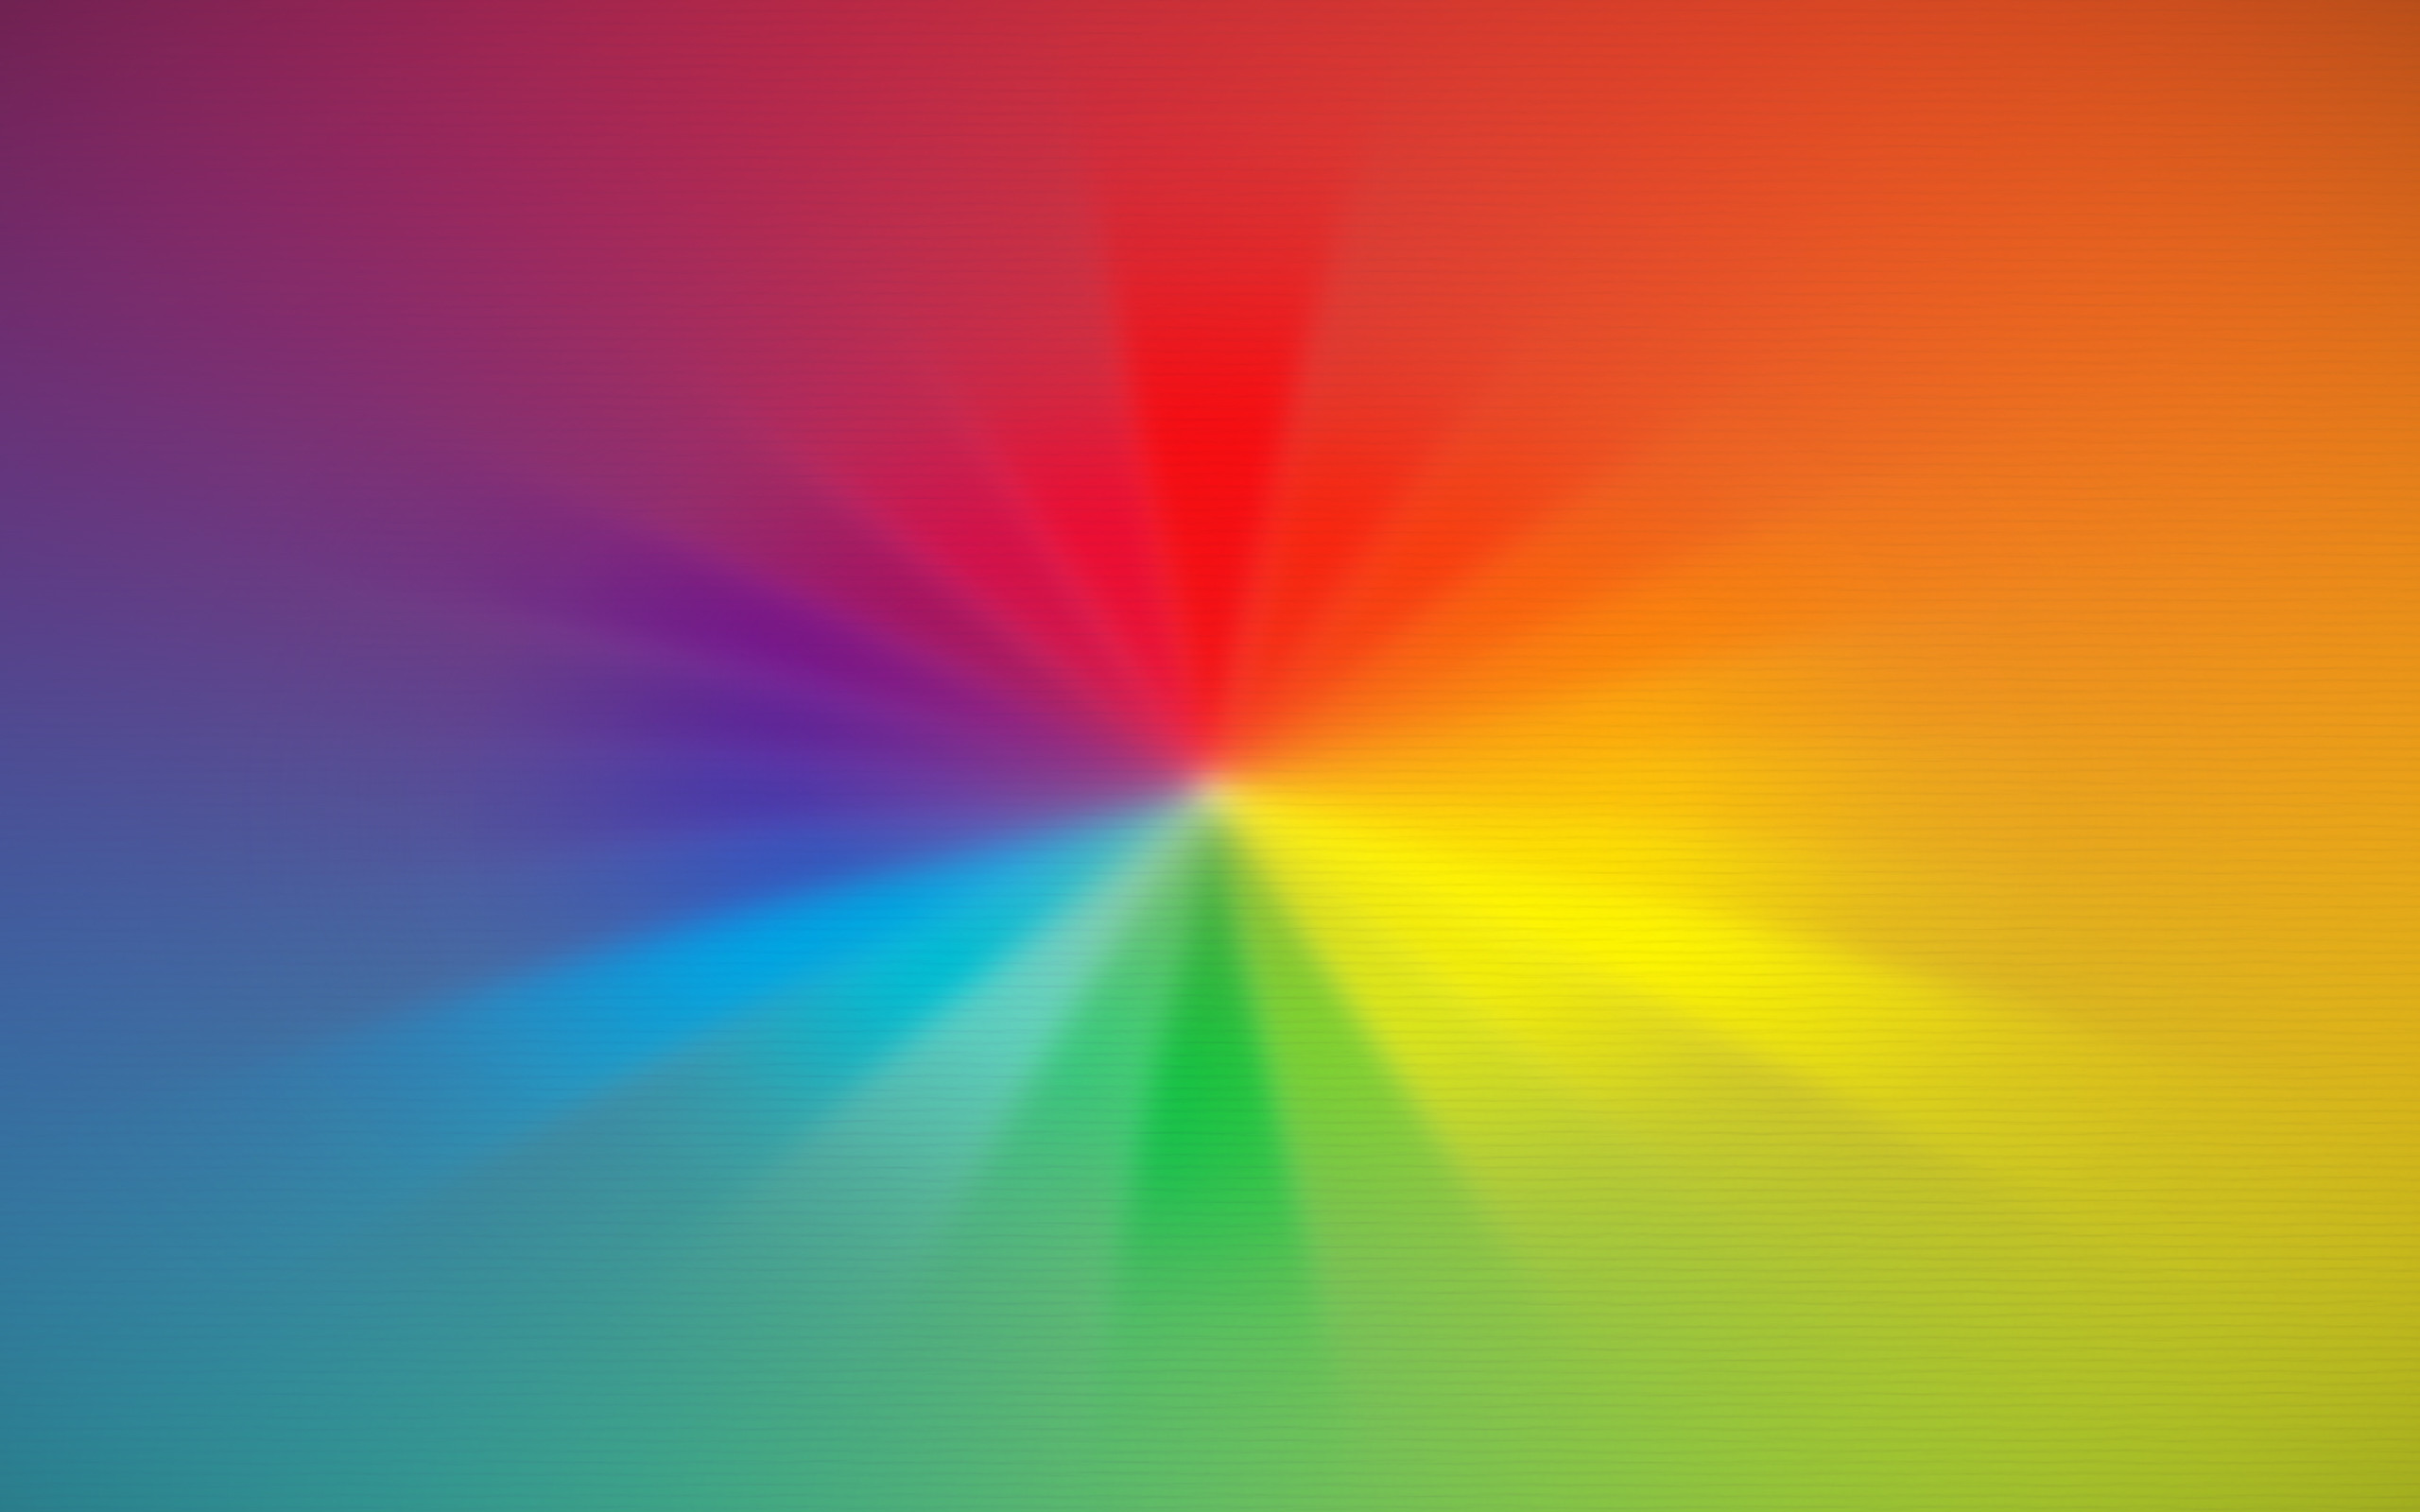 Free Rainbow Pictures   Rainbow Wallpaper Backgrounds   Wallcapture.com